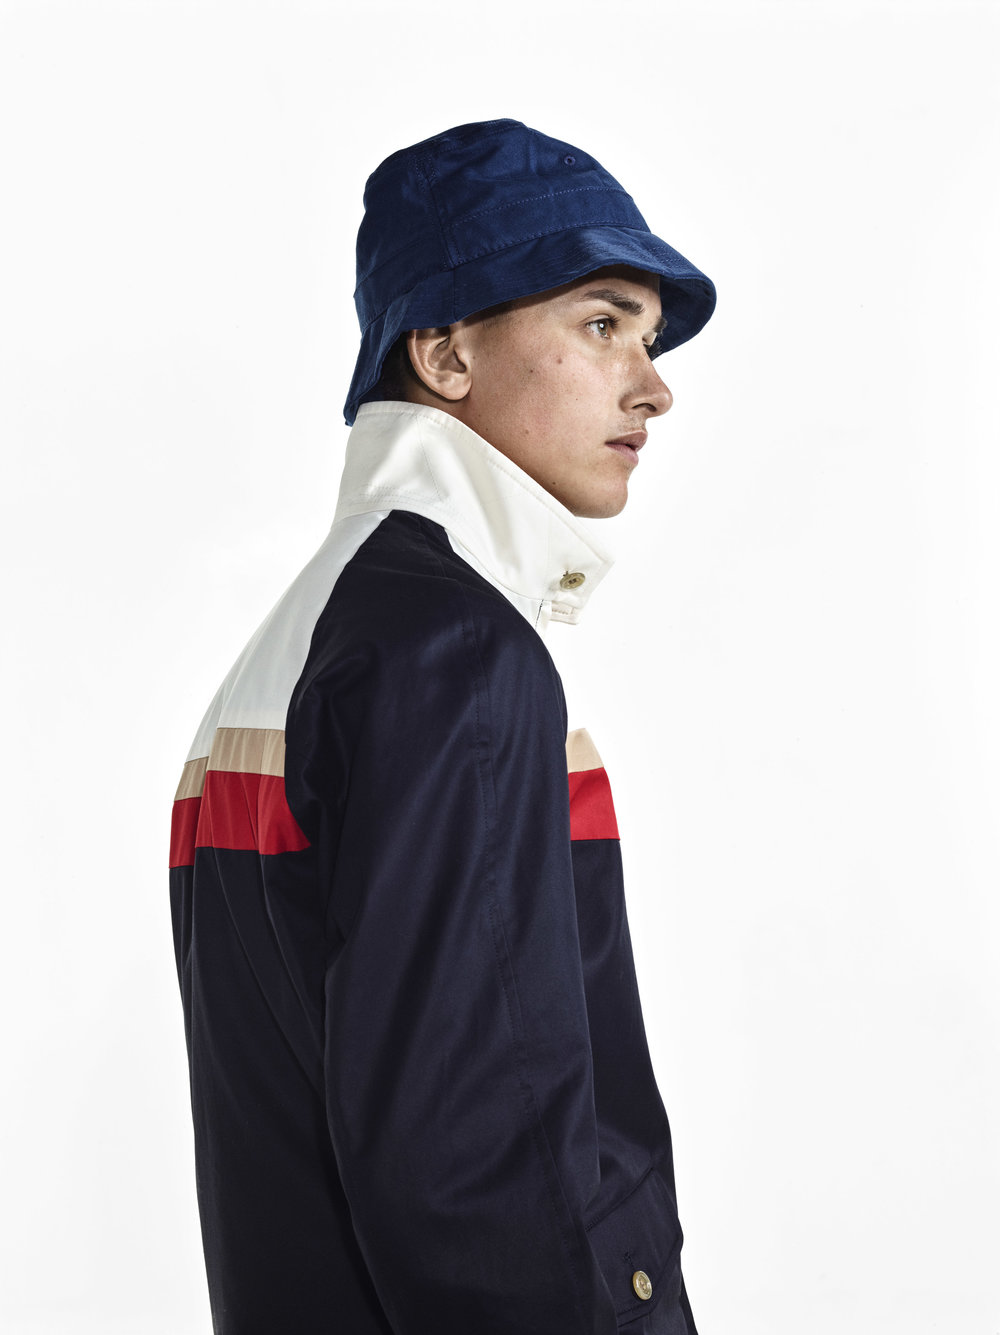 Golfer - Grenfell Cloth Colour Block (2).jpg